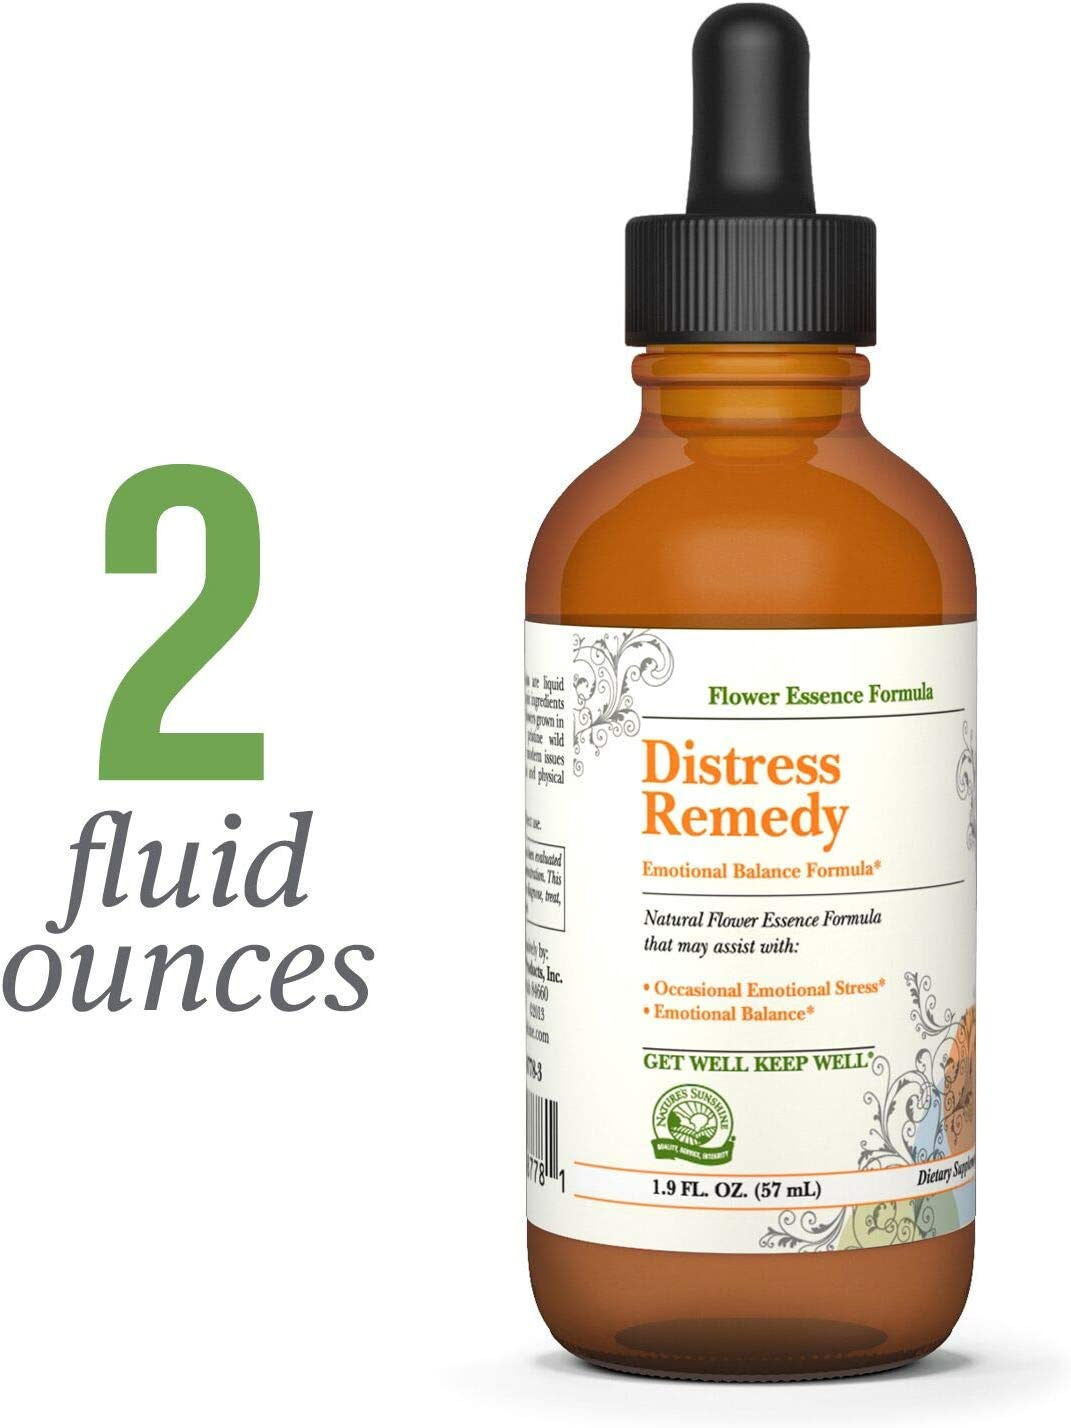 Nature s Sunshine Distress Remedy, Flower Remedy, 2 fl. oz. Supports Emotional Balance and Helps with Occasional Feelings of Distress